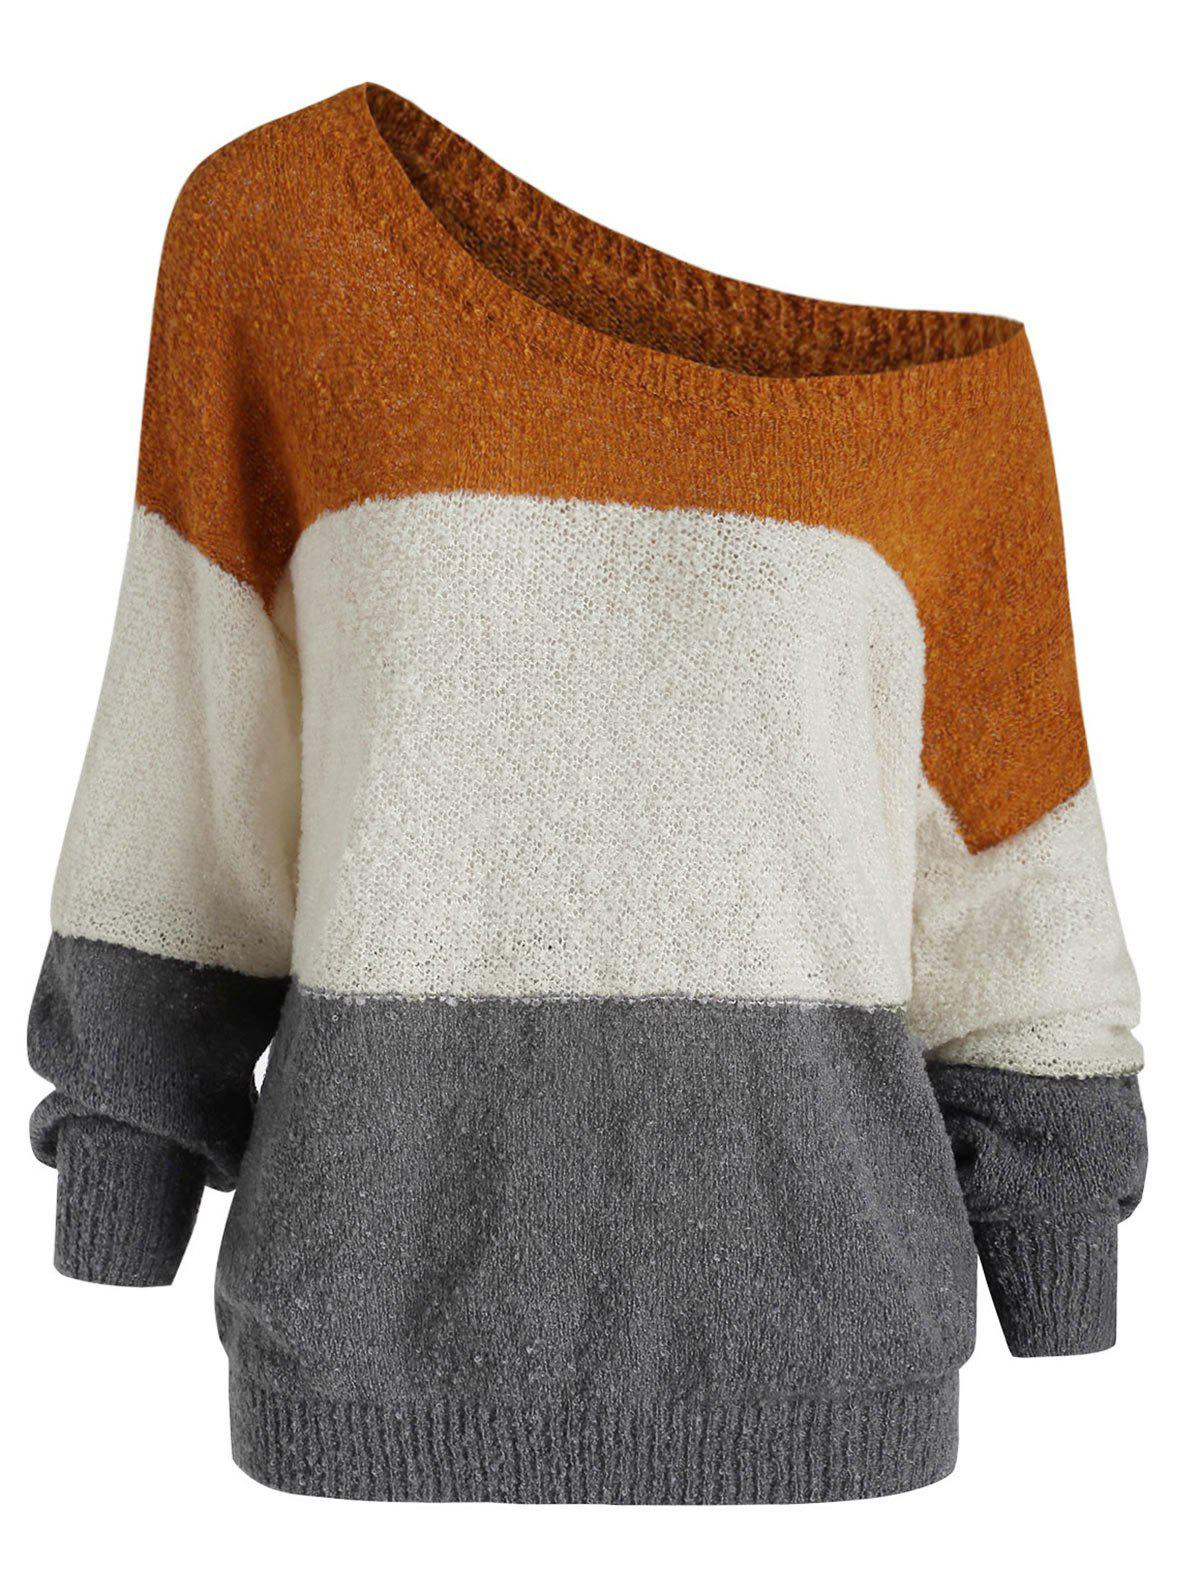 Drop Shoulder Colorblock Loose Sweater - multicolor XL